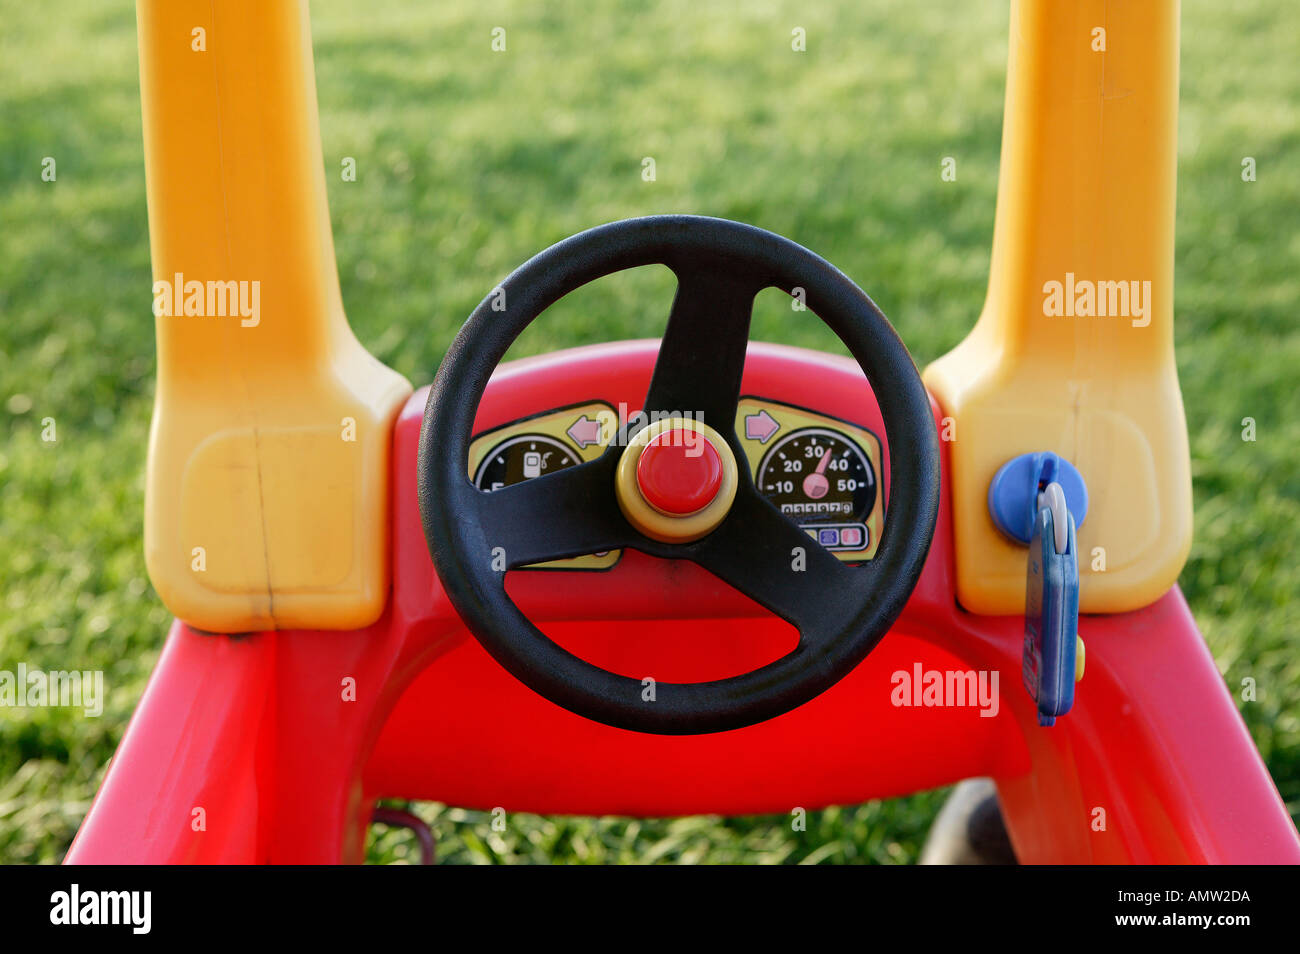 Red And Yellow Childs Toy Car Stock Photo 2855641 Alamy